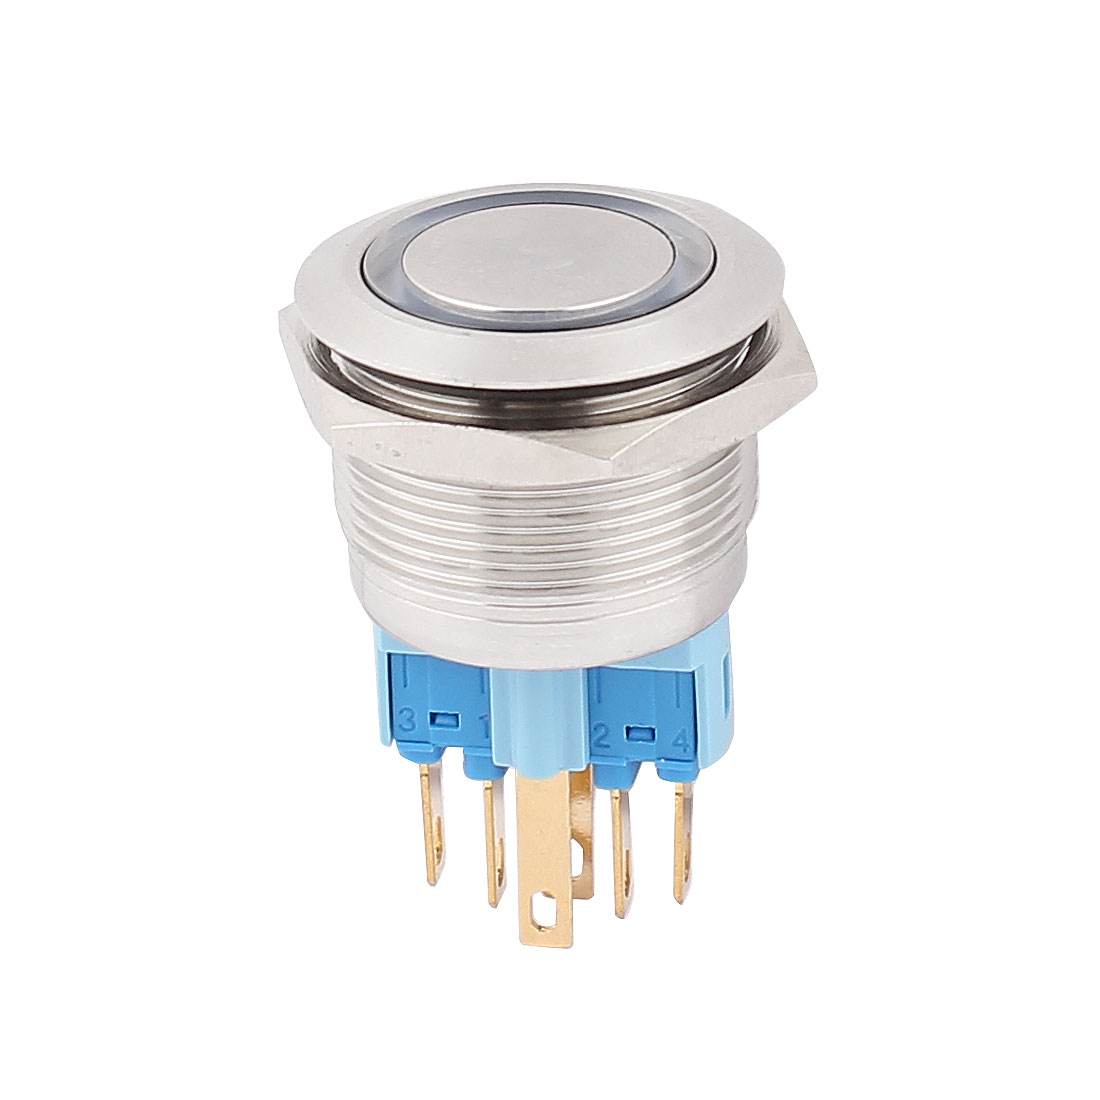 AC 220V 18mm Blue LED Light 22mm Mounted Thread 6 Pins DPST NO/NC Momentary Push Button Switch